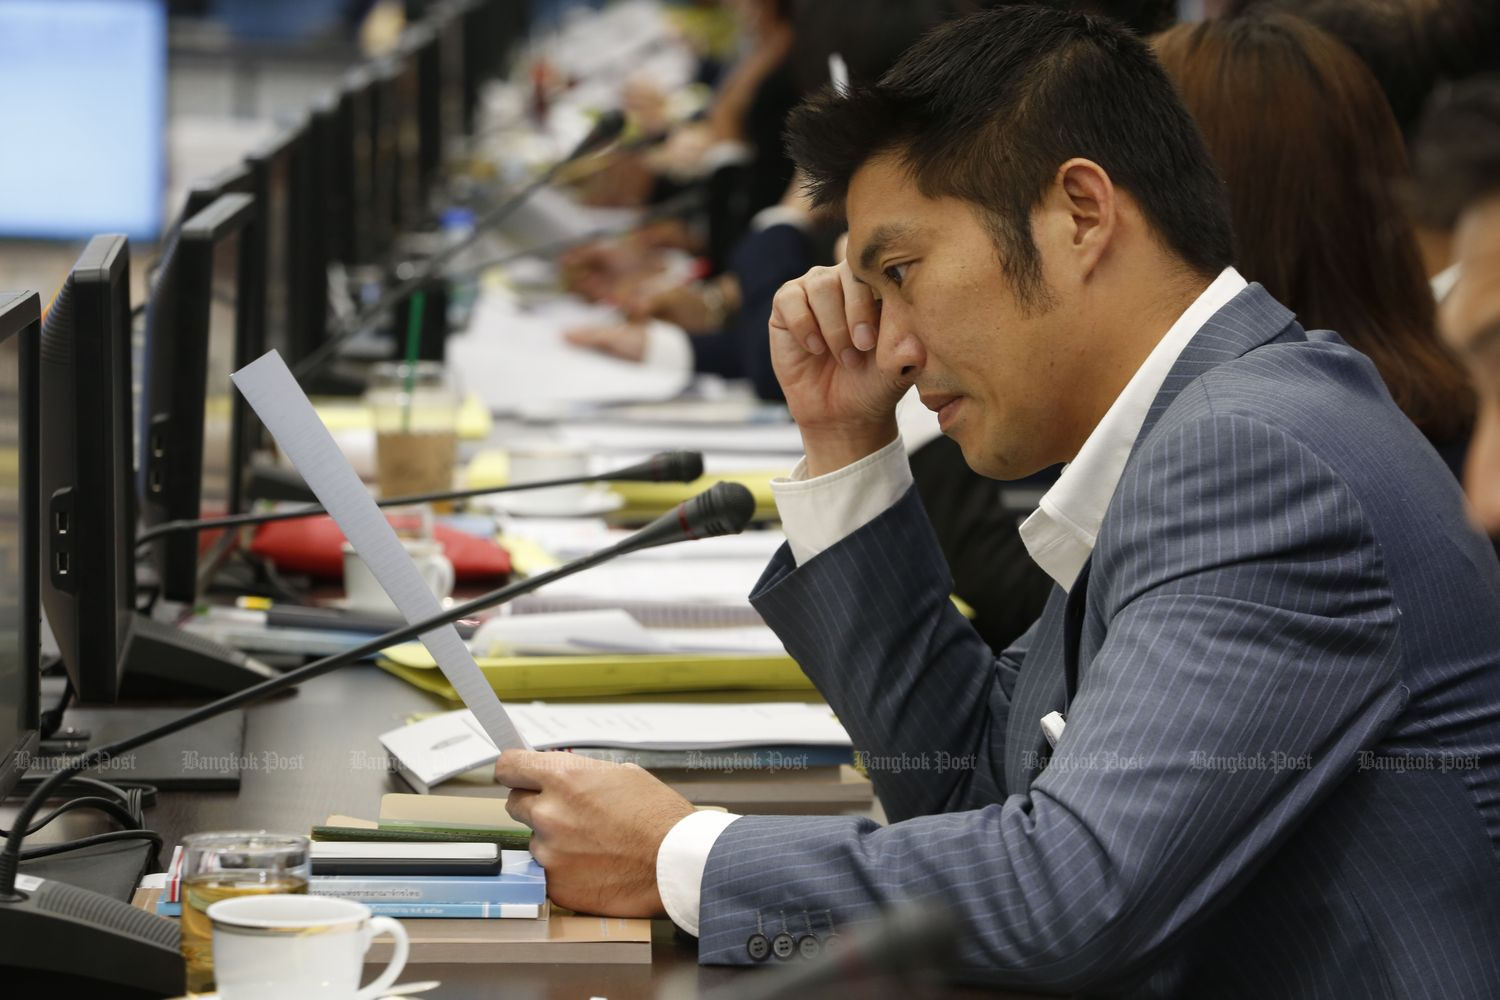 Future Forward leader Thanathorn Juangroongruangkit reviews the fiscal 2020 budget bill at Parliament in Bangkok on Oct 24. (Photo by Pornprom Sattrabhaya)